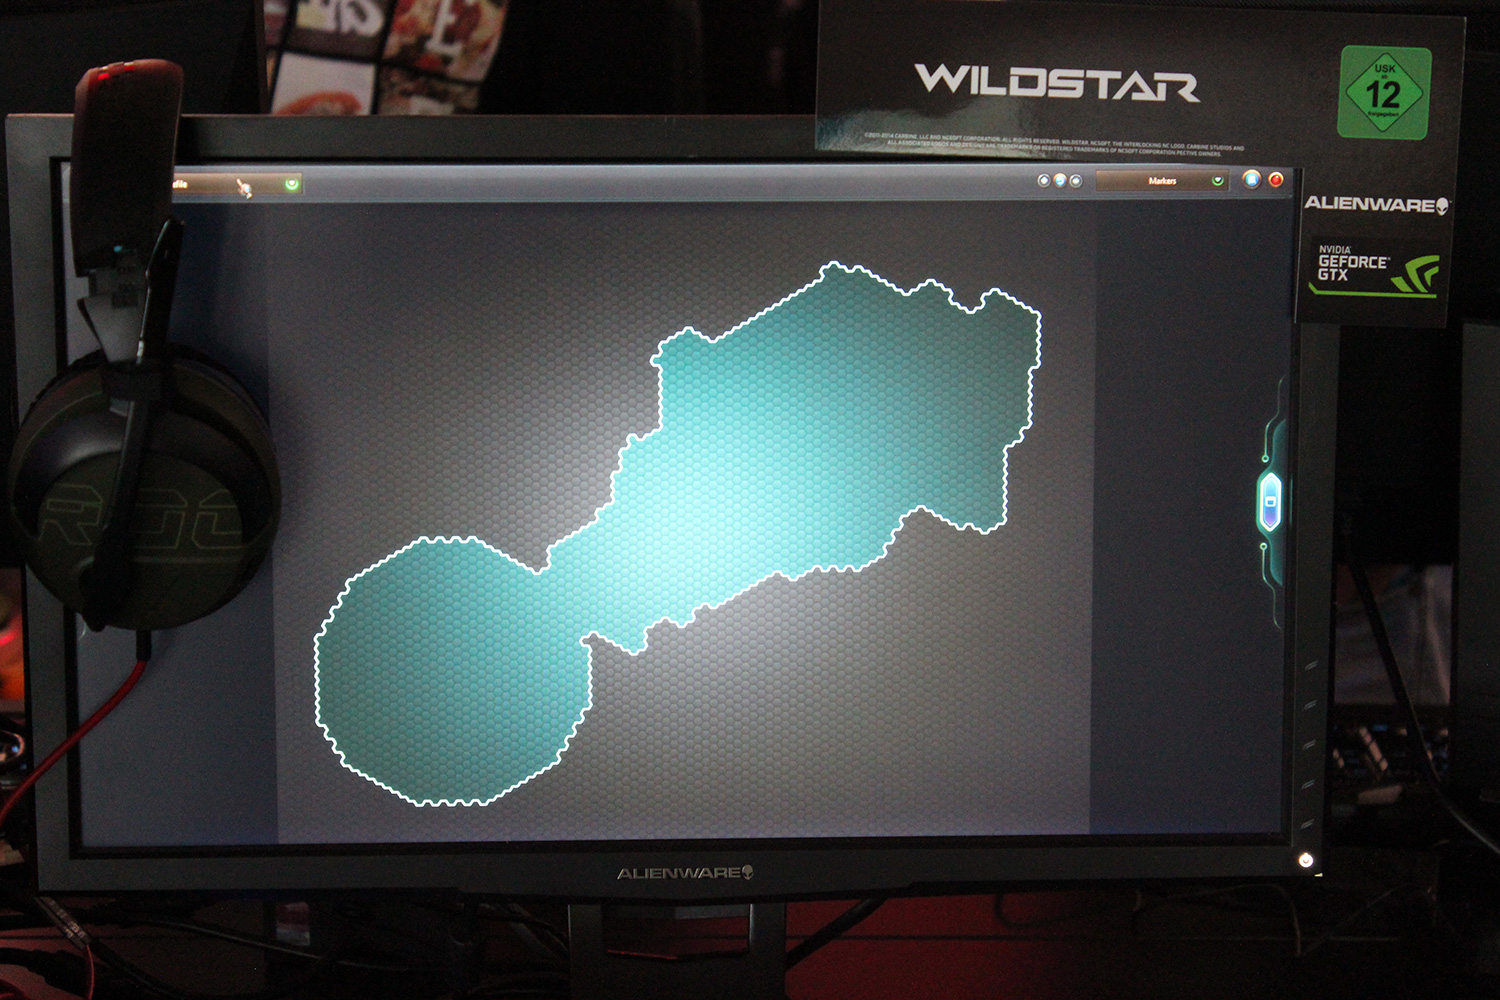 wildstar gamescom 2014